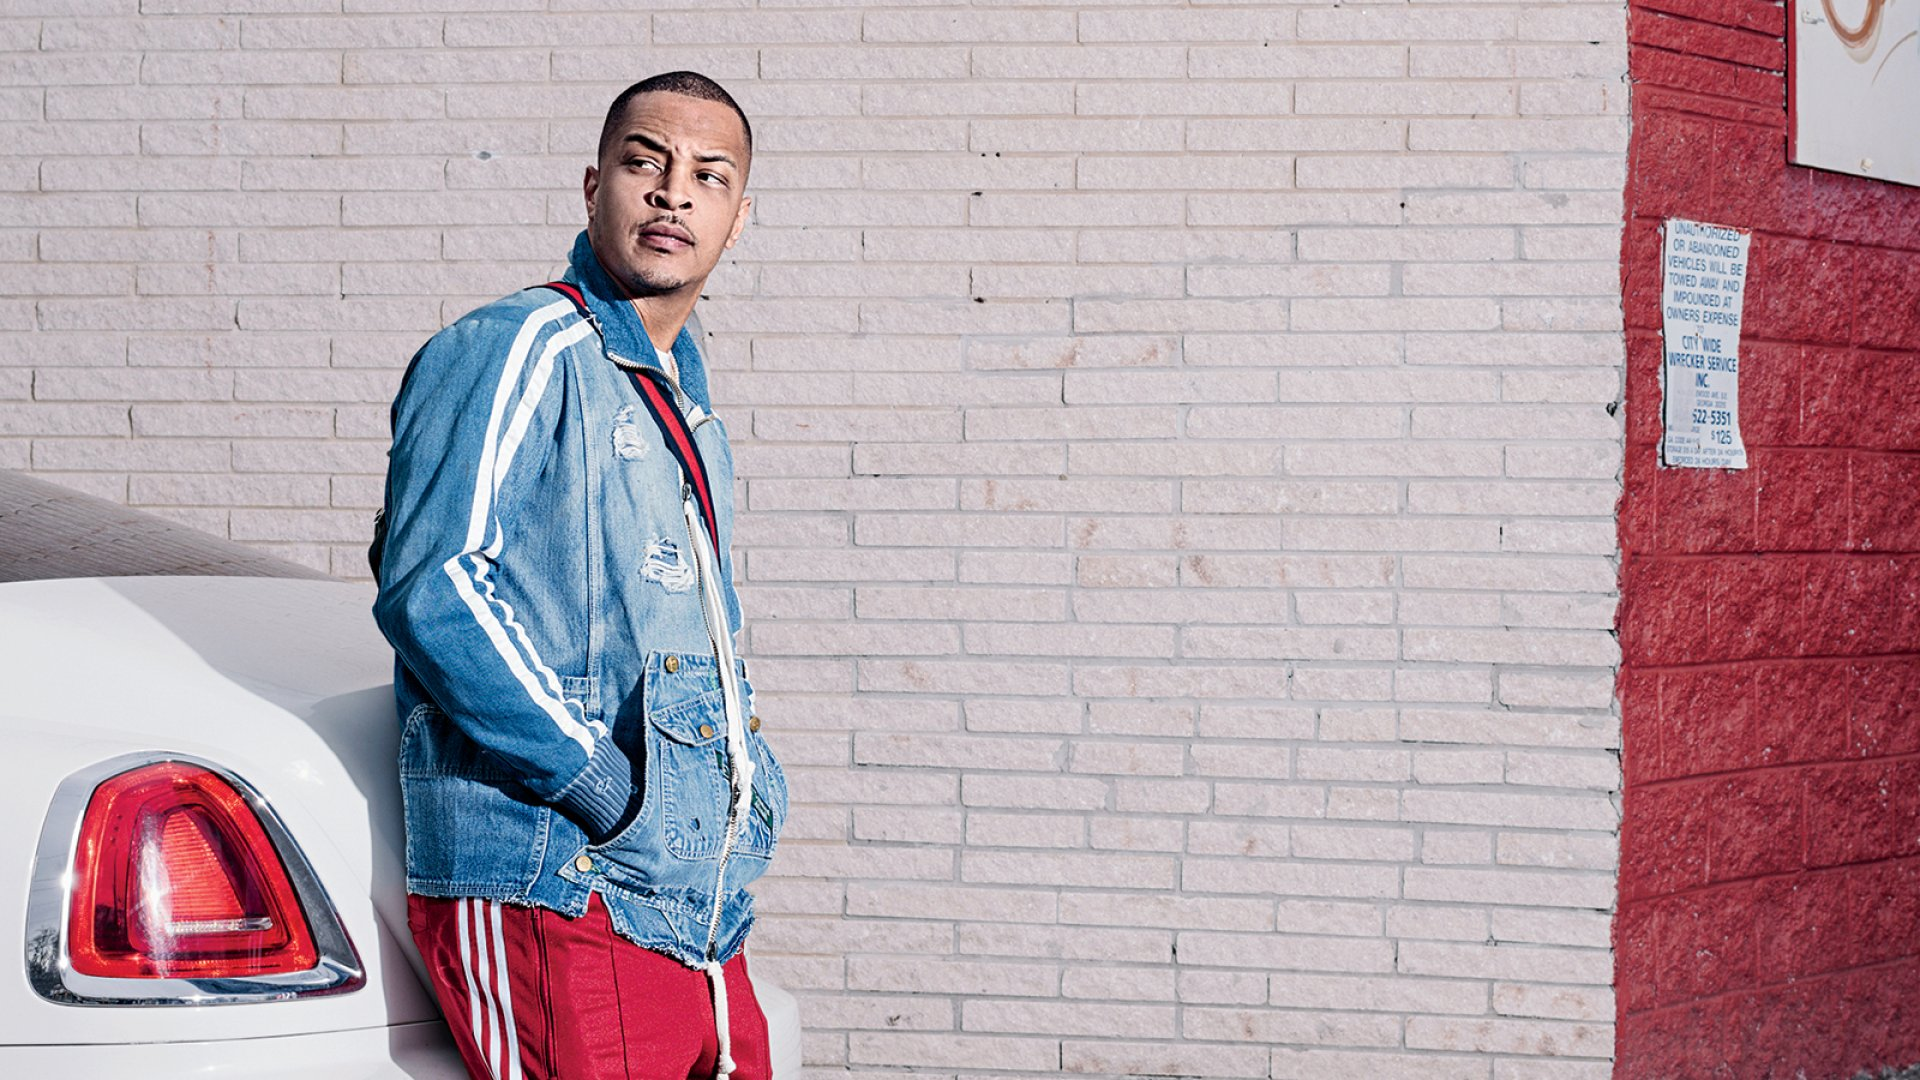 T.I.'s Latest Message Draws Criticism From Fans